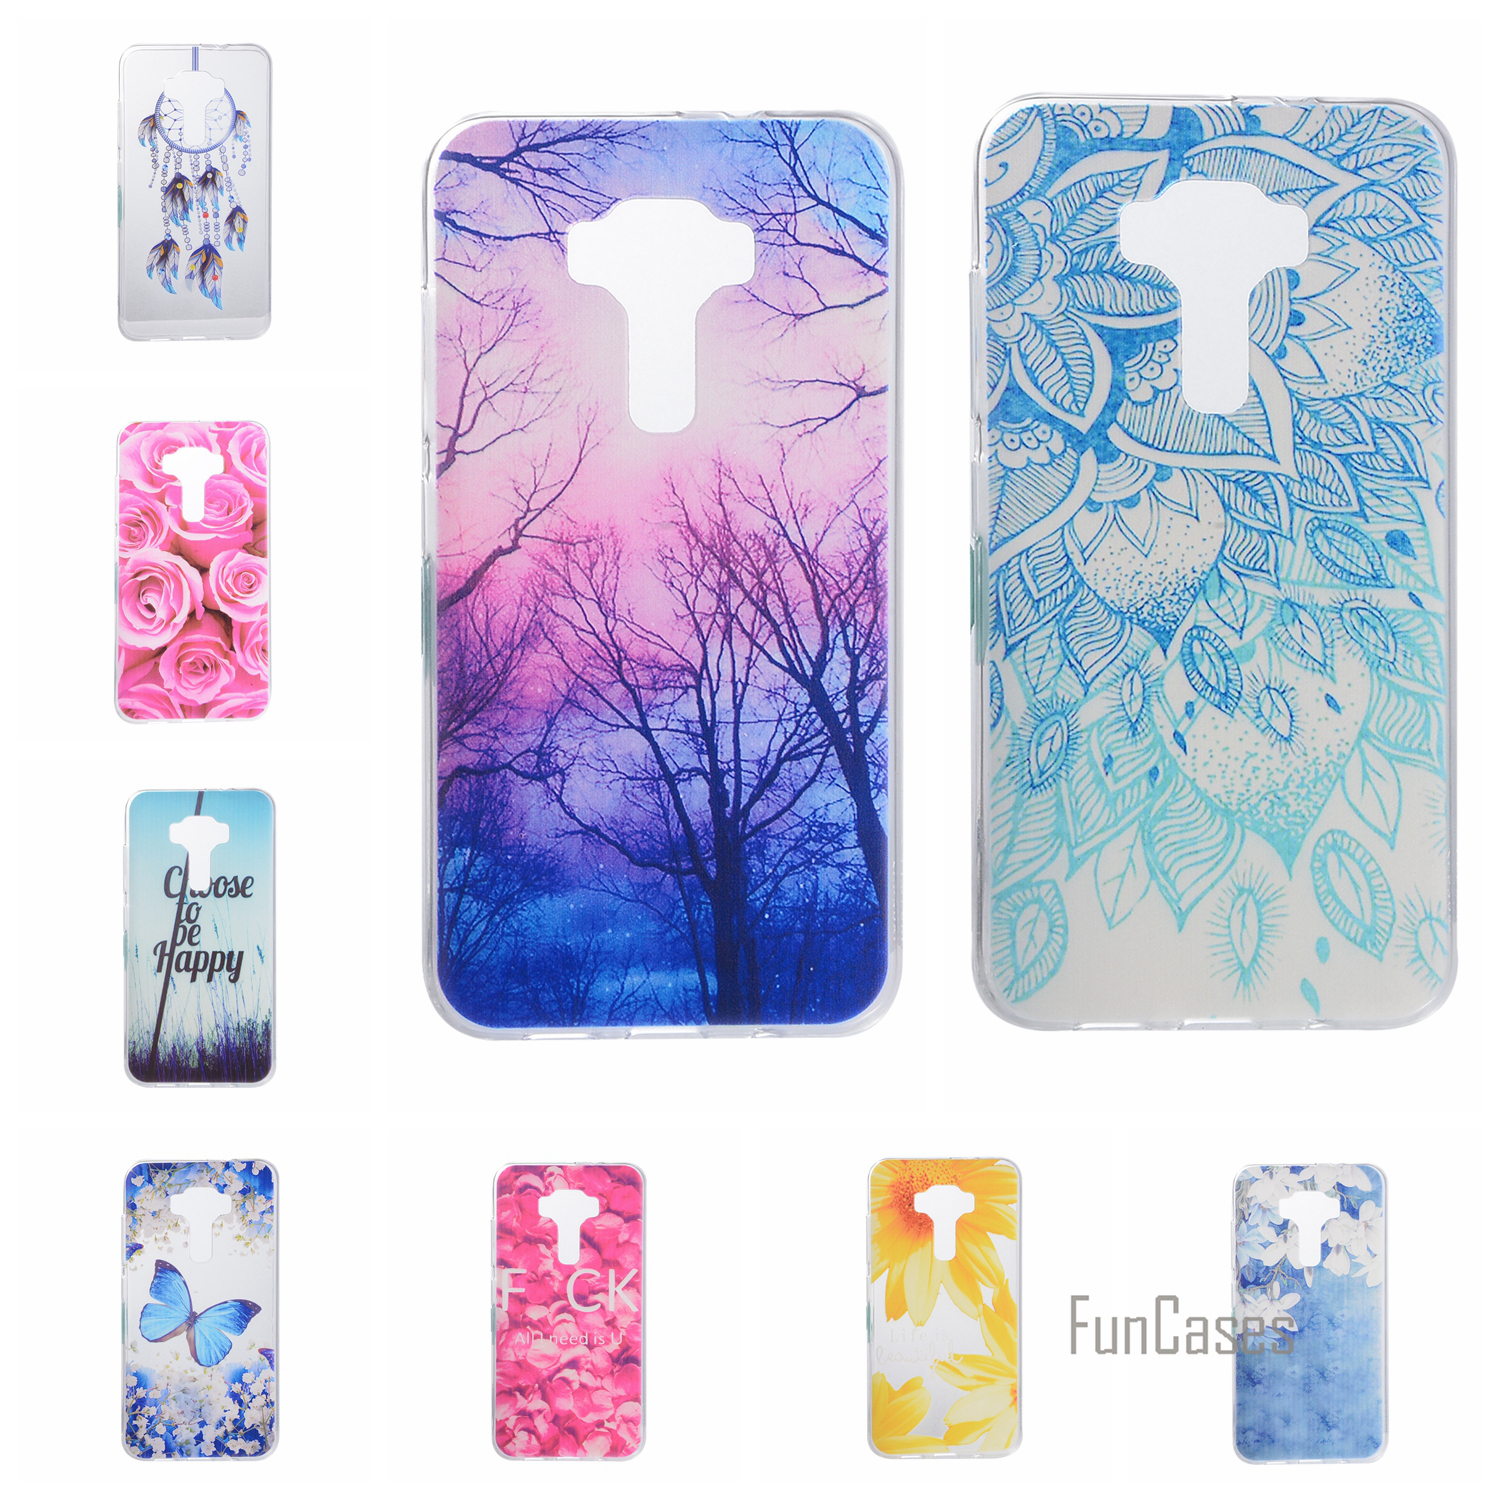 Cartoon Flower Butterfly Bear Tree Cute Back Cover Silicon Soft TPU Mobile Phone Case For ASUS ZE552KL coque Zenfone 3 ZE552KL :